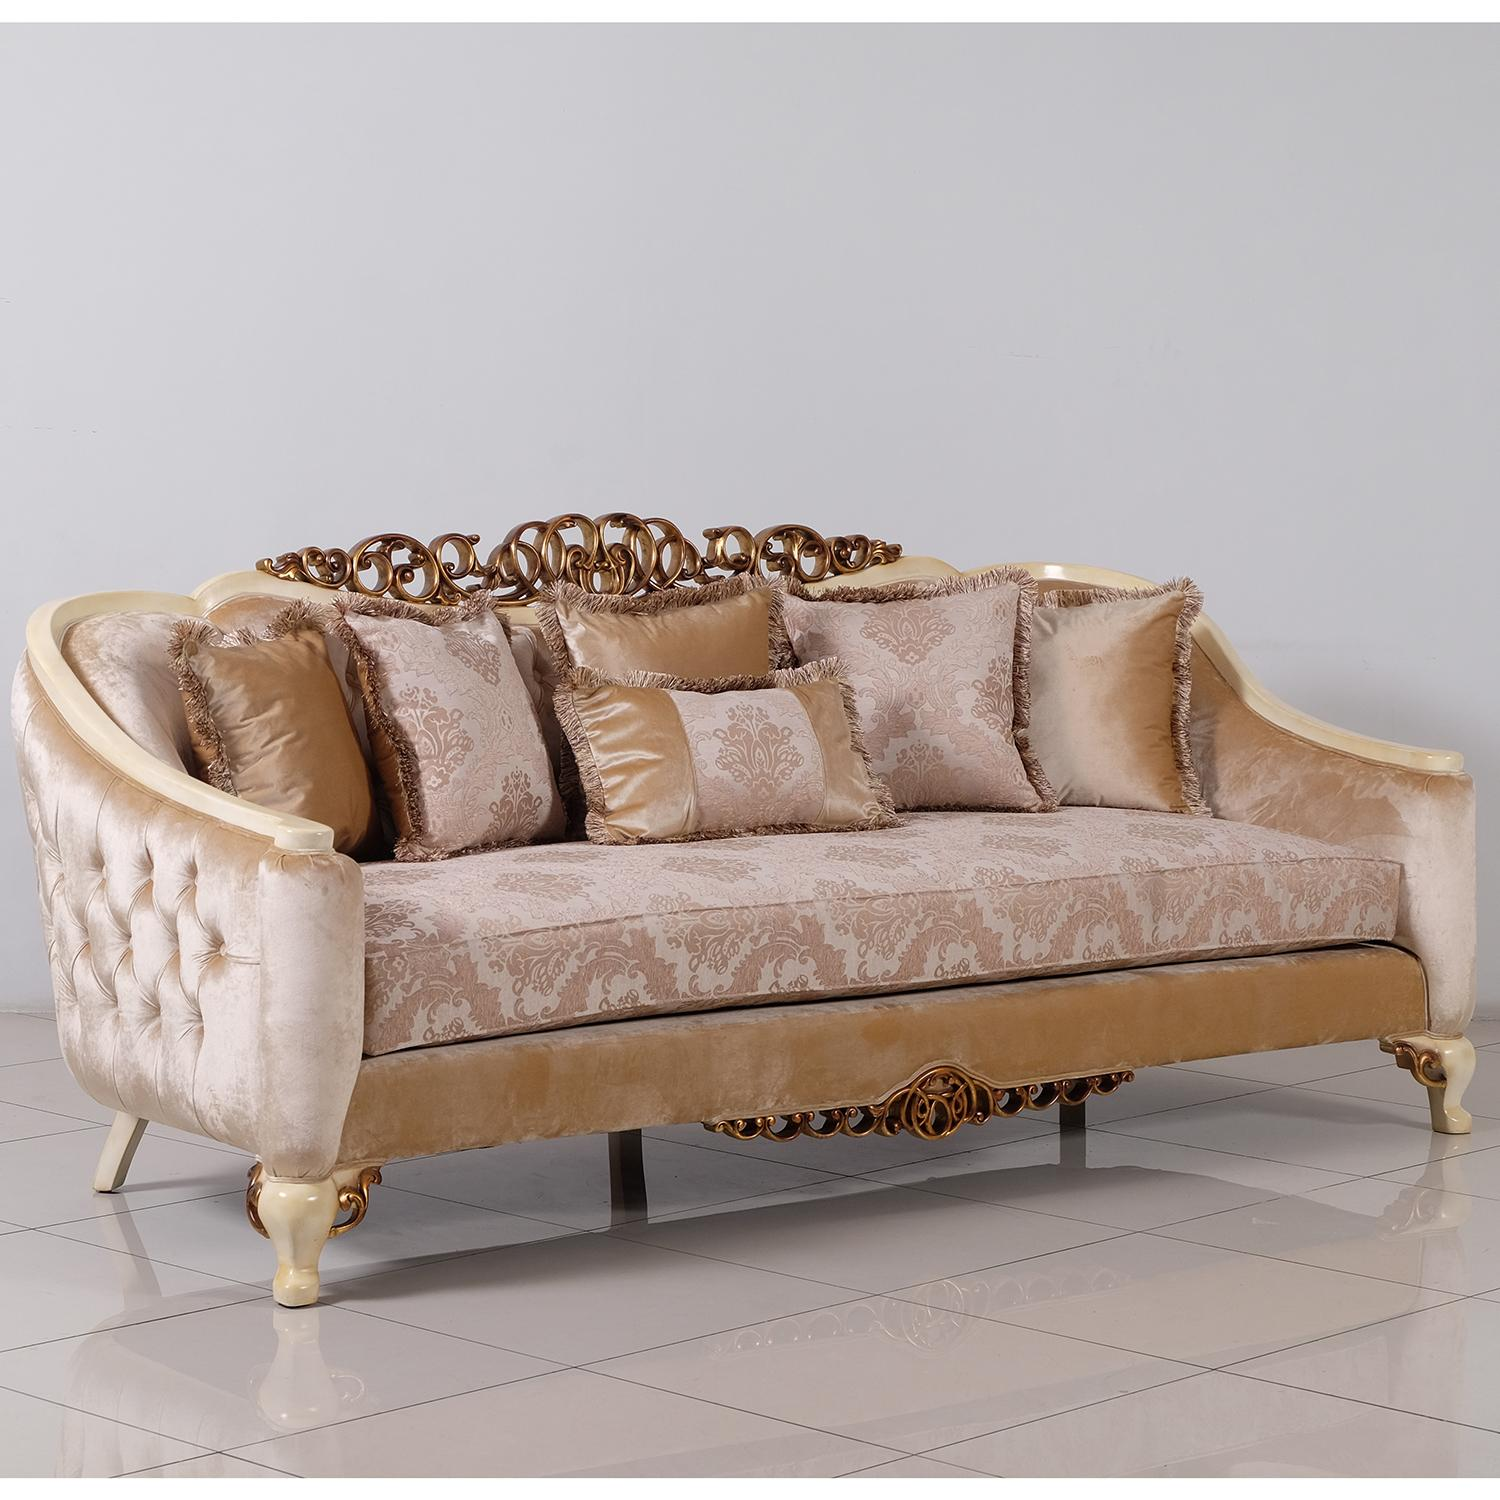 Classic  Traditional Beige  Gold  Antique  Pearl Wood  Solid Hardwood and Fabric Sofa EUROPEAN FURNITURE 45350-S